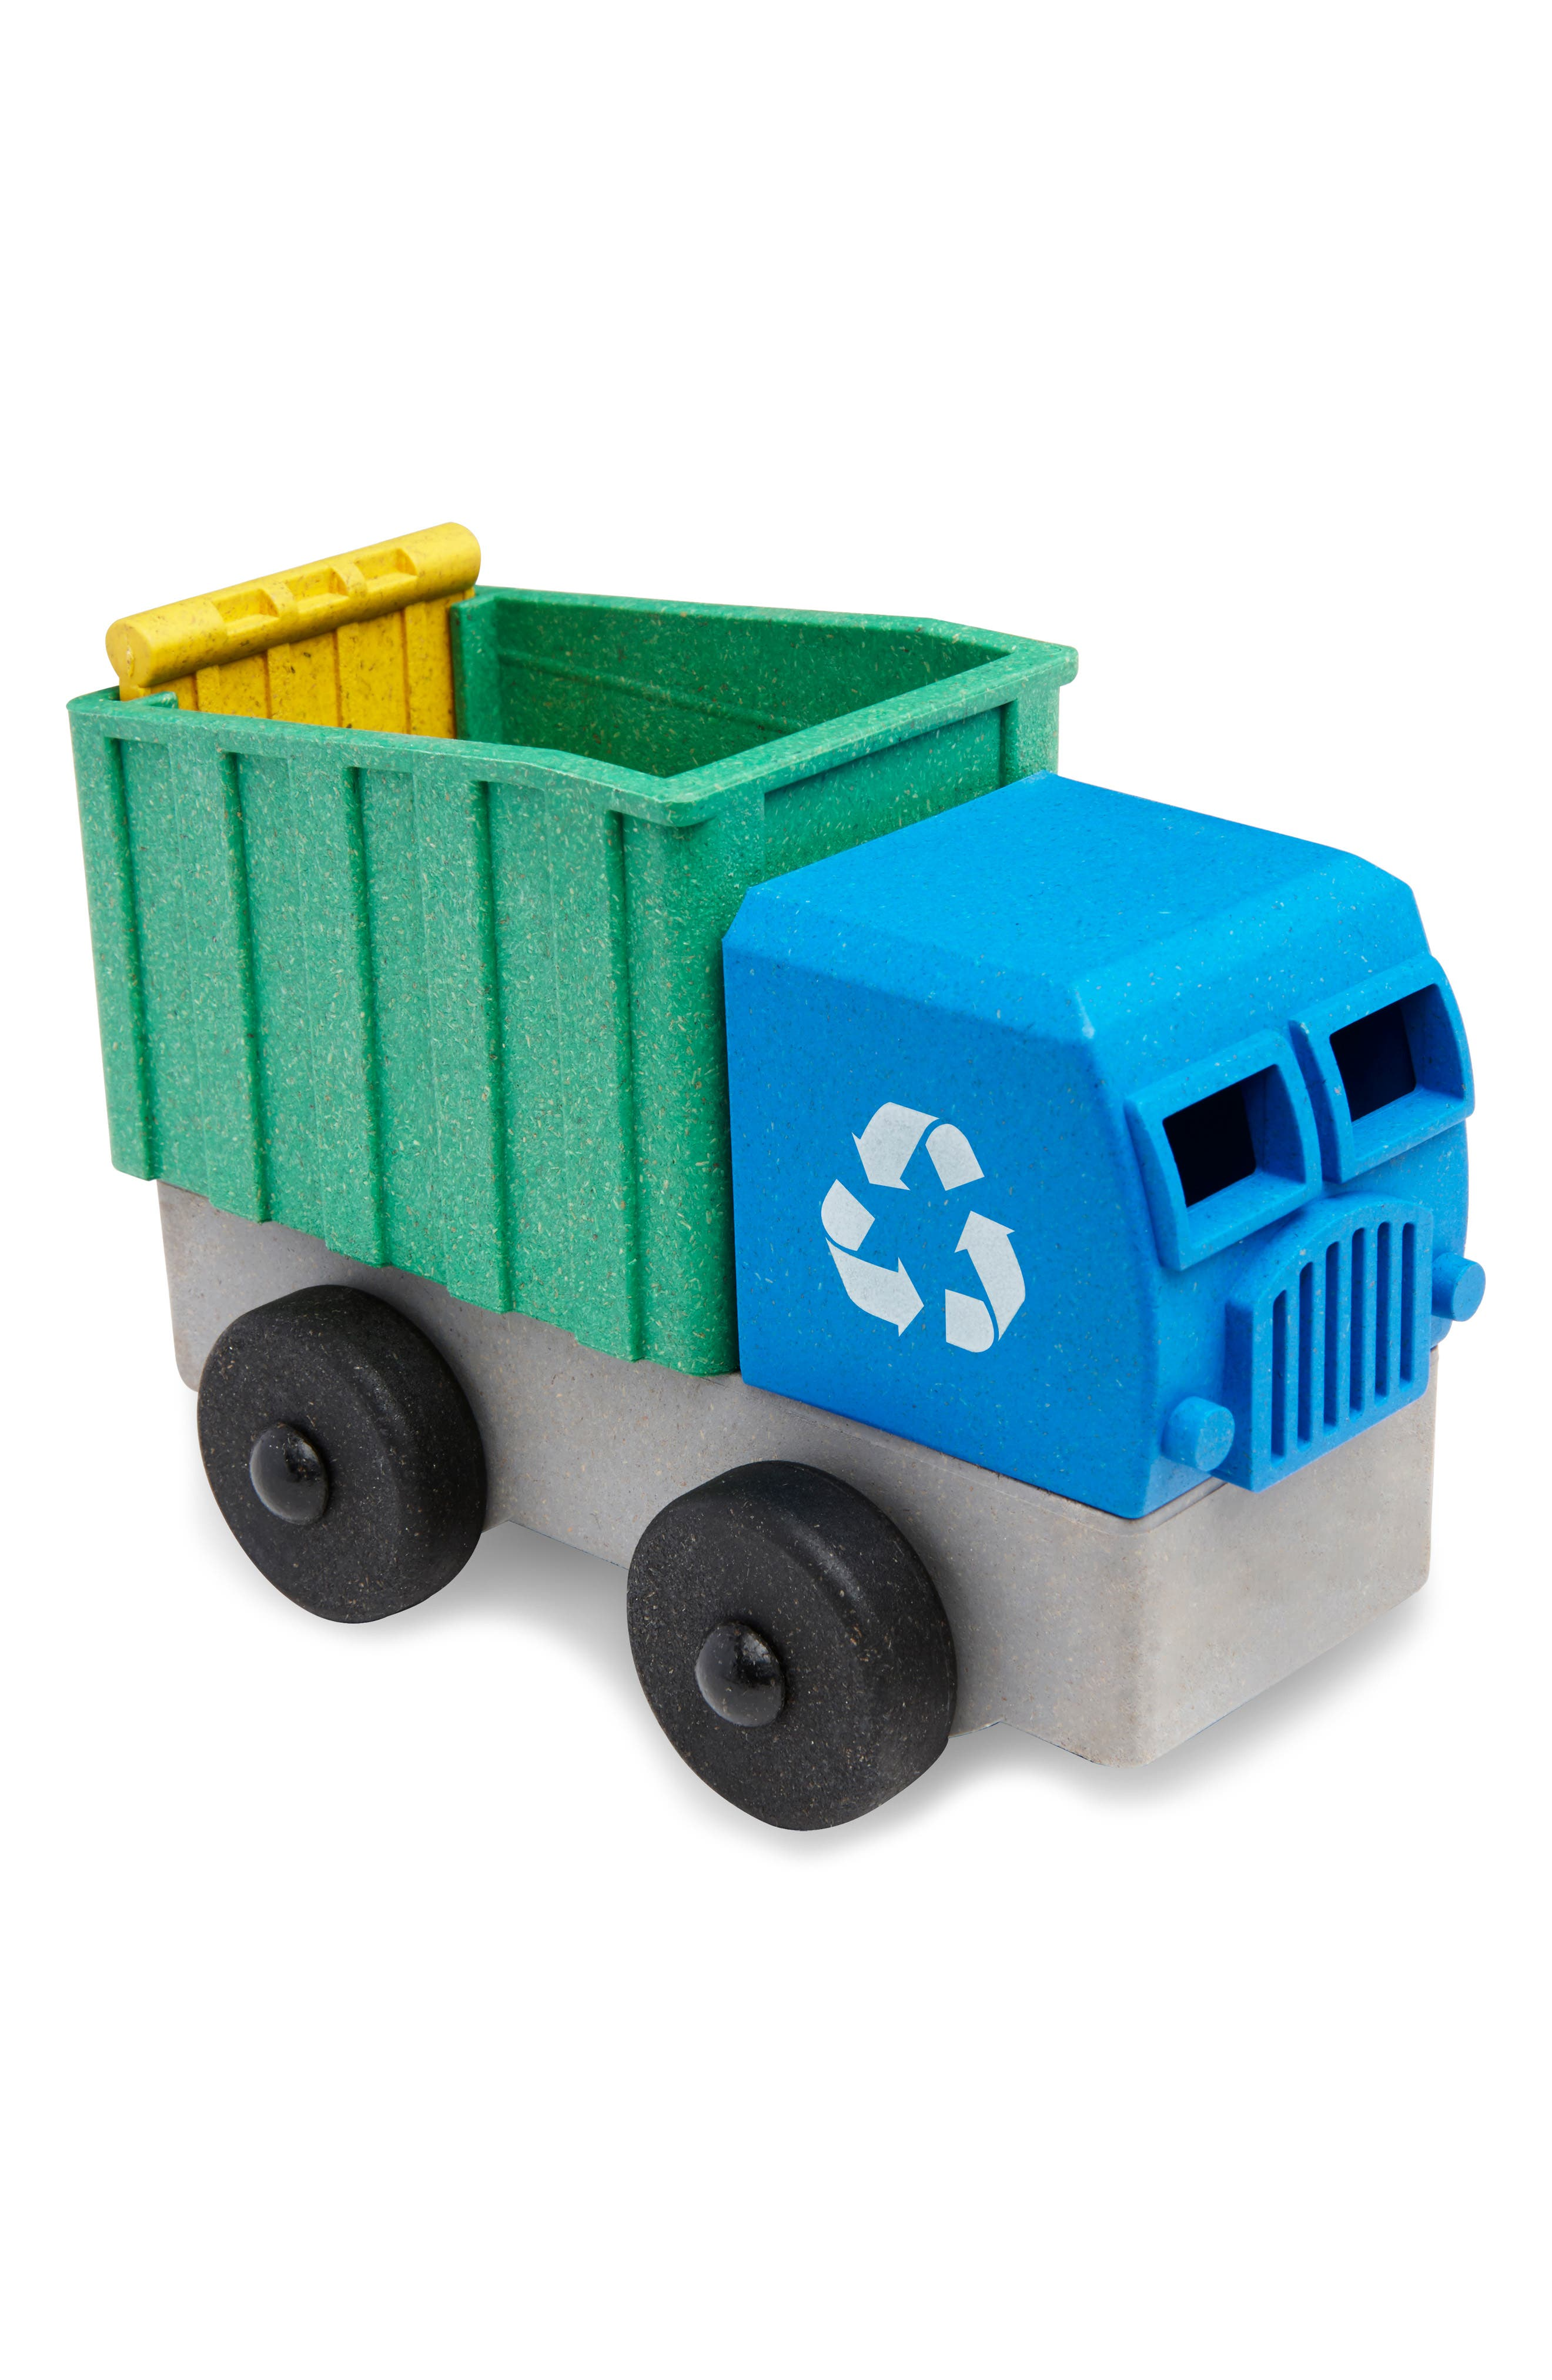 Boys Lukes Toy Factory Educational 4Piece Puzzle Recycling Truck Toy  Flash Card Set